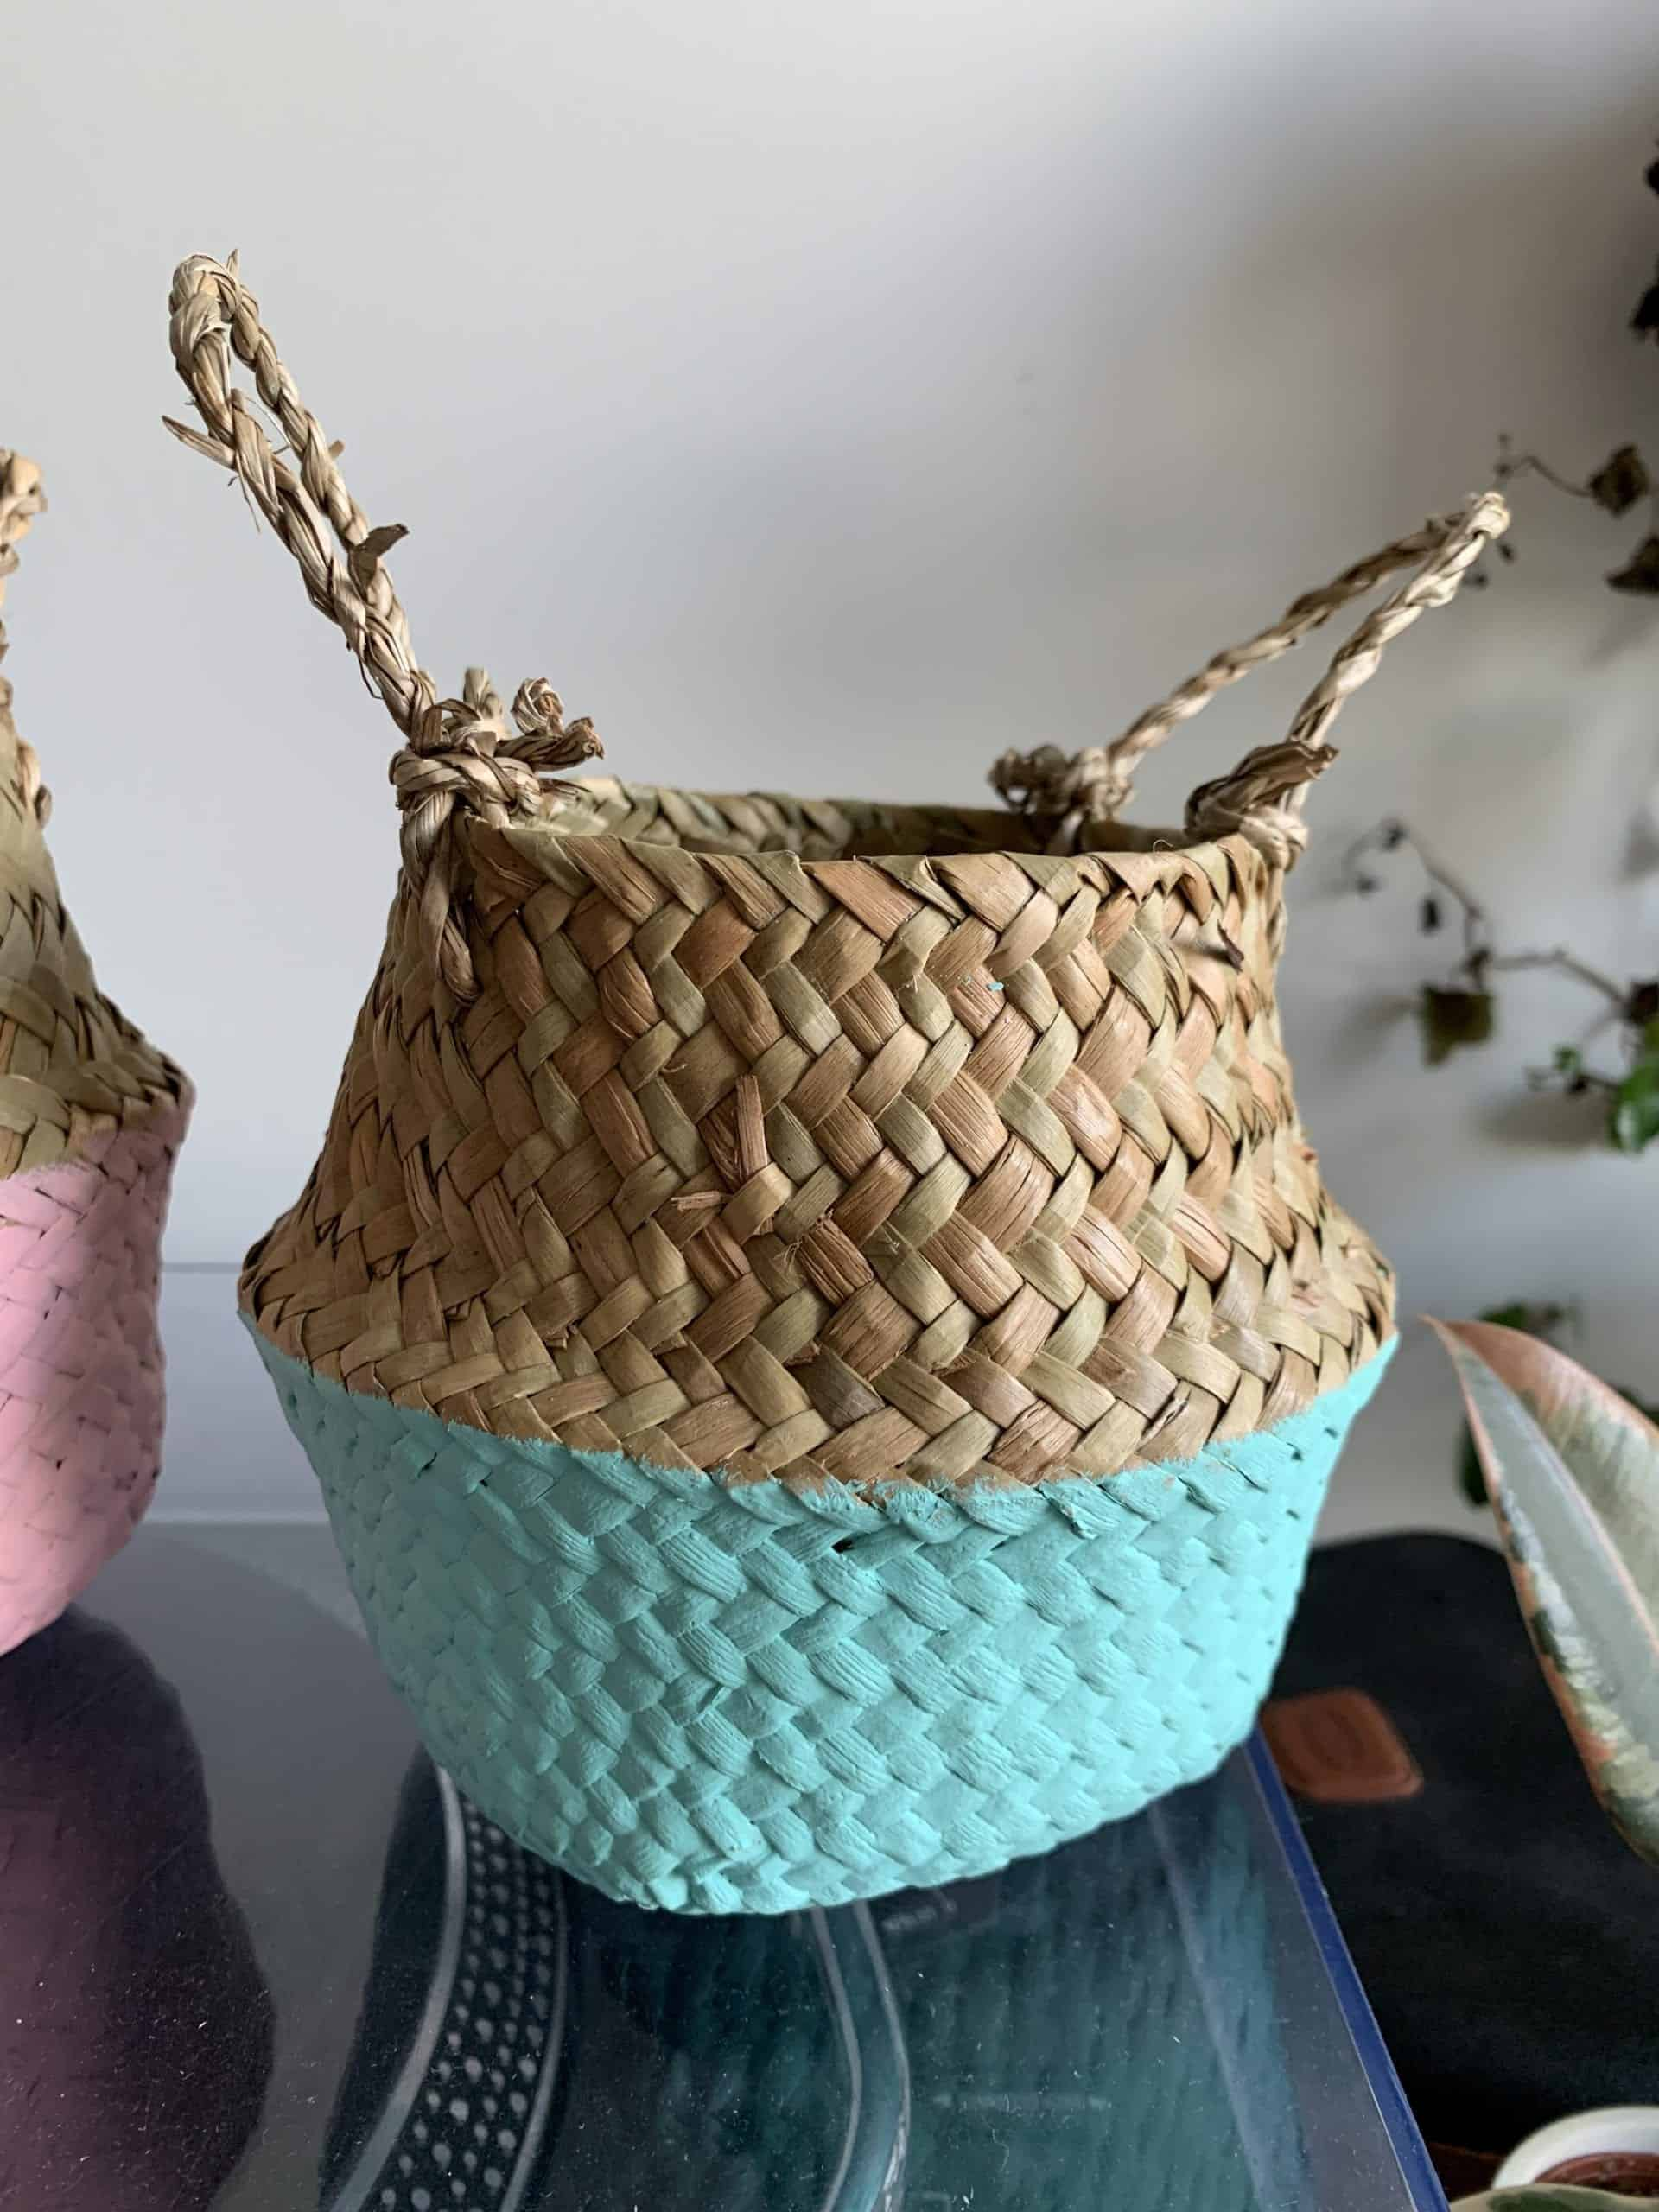 Wicker basket planter for 7-9cm pots | Available in choice of colours - Blue